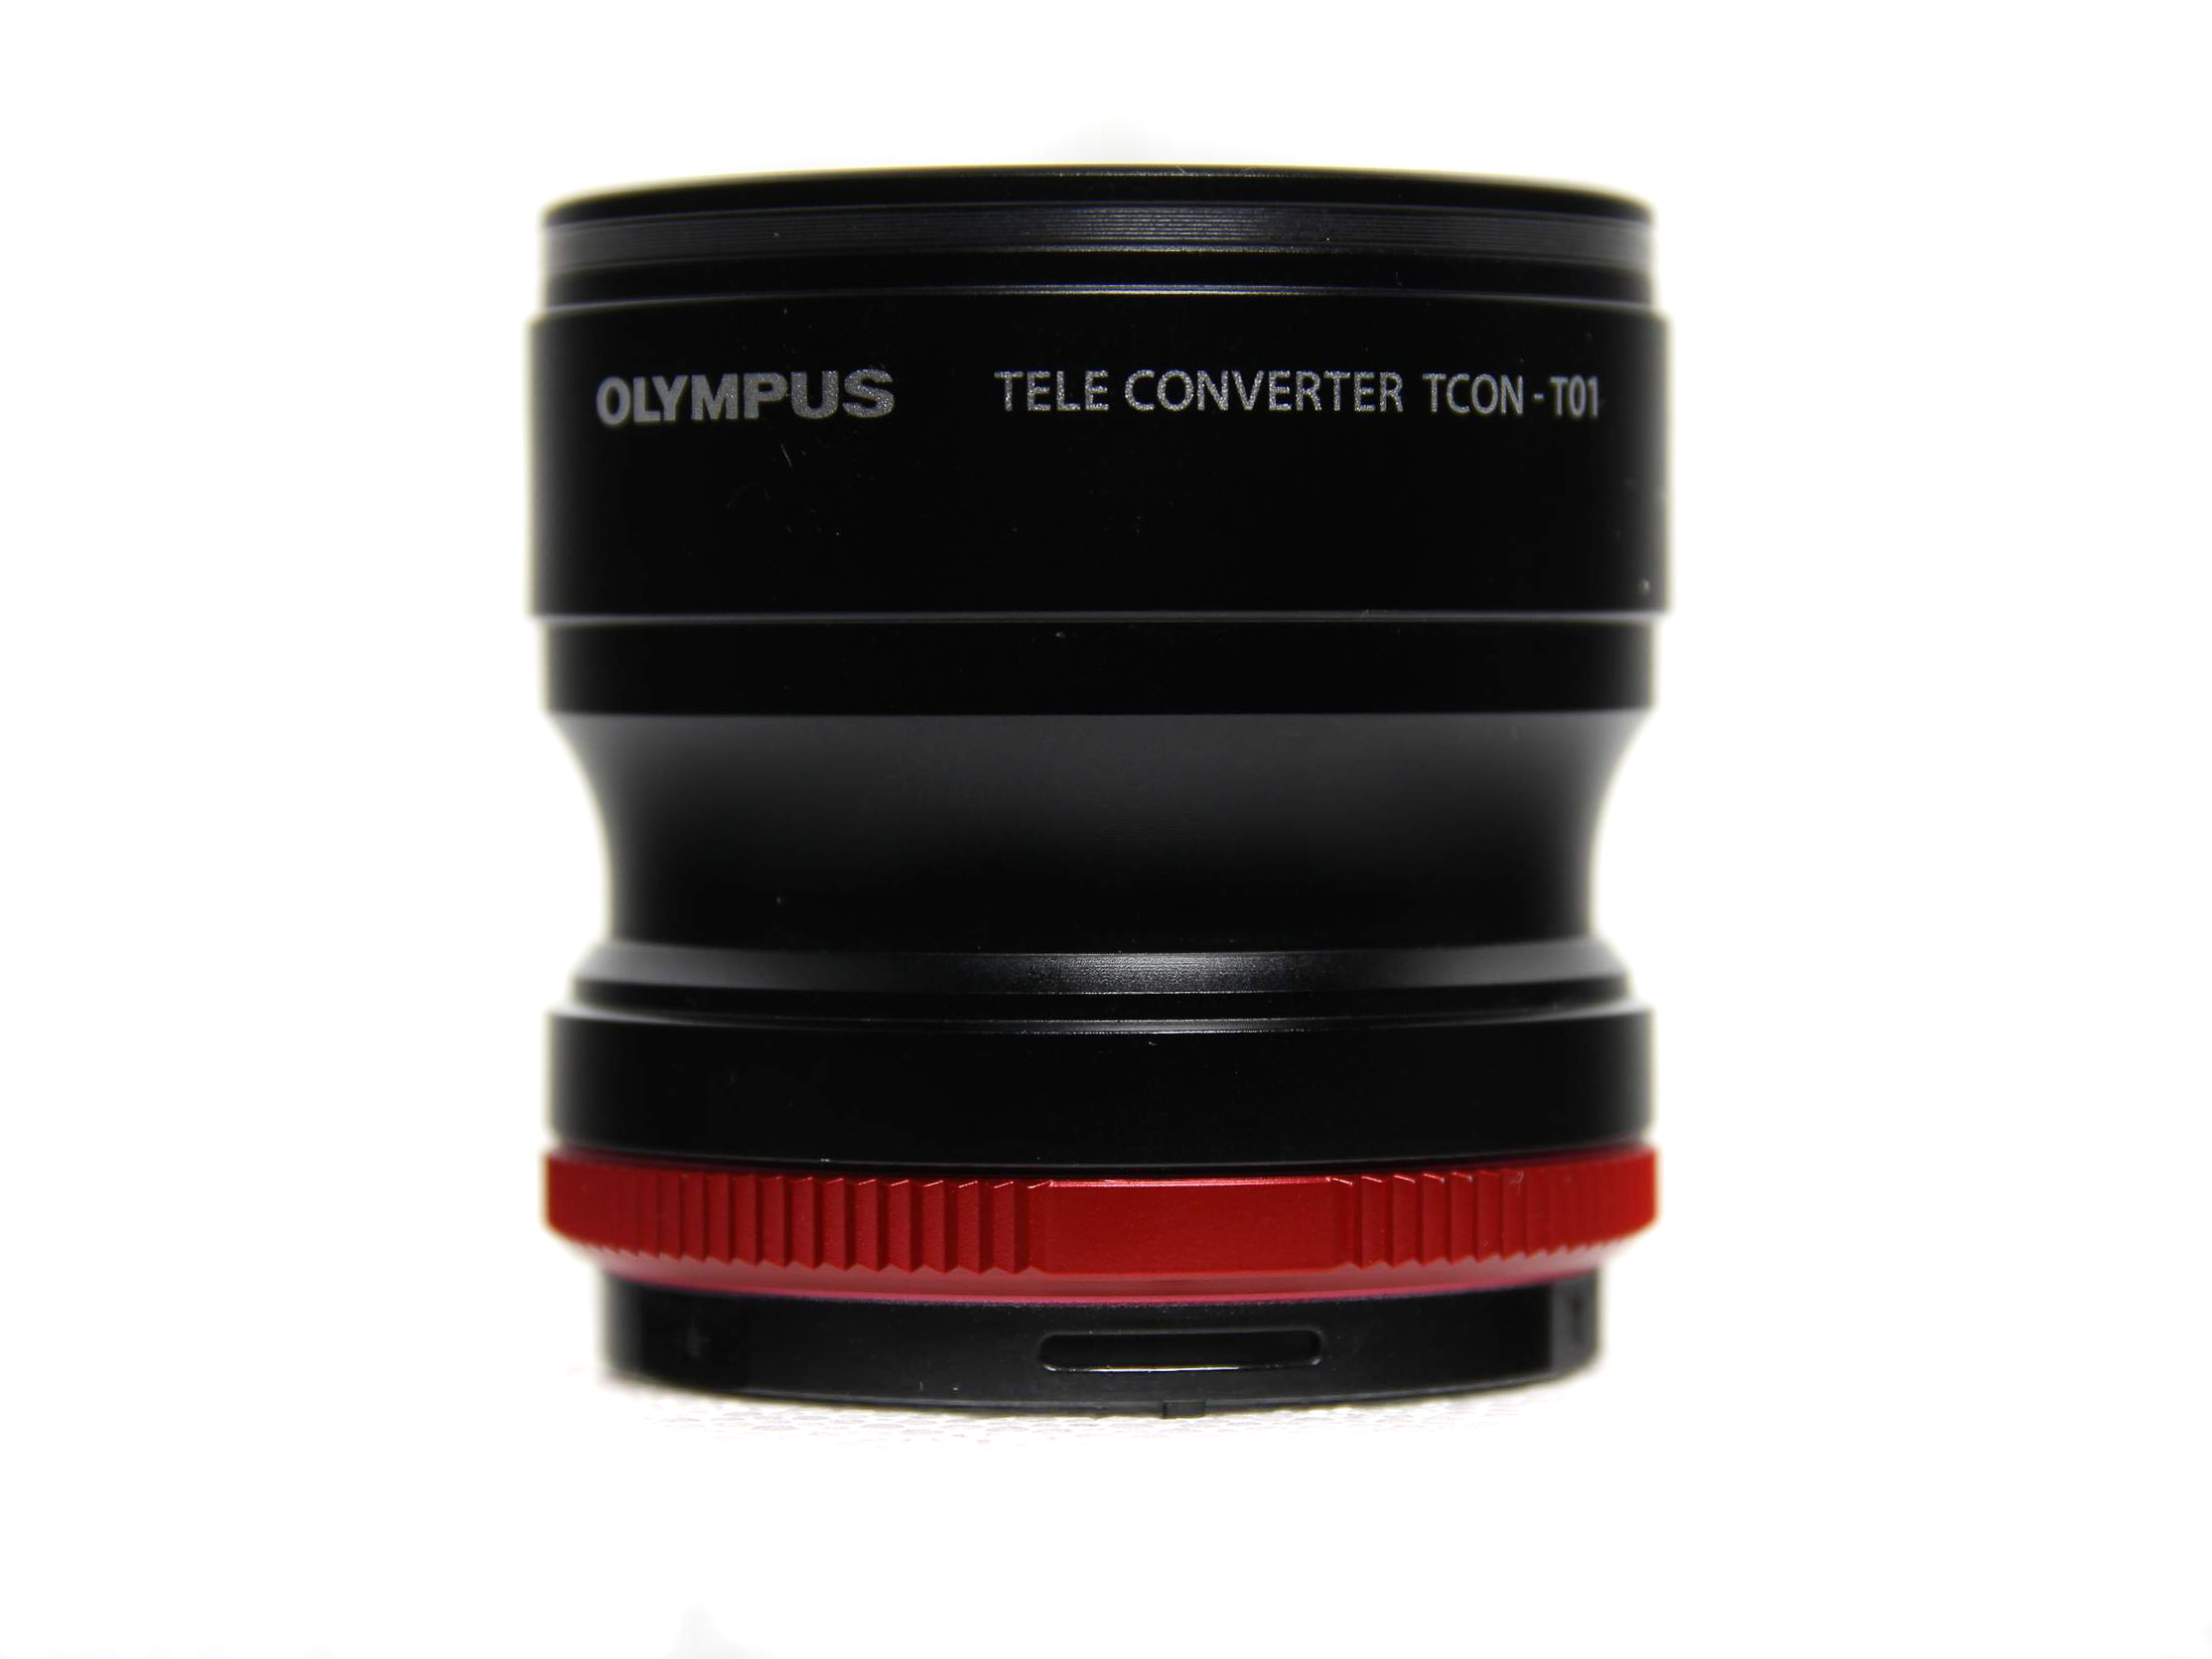 Olympus Rental From 4 Month Cameracorp Australia Om D E M10 Mark Ii Kit 14 42mm Ez 45mm F18 Black